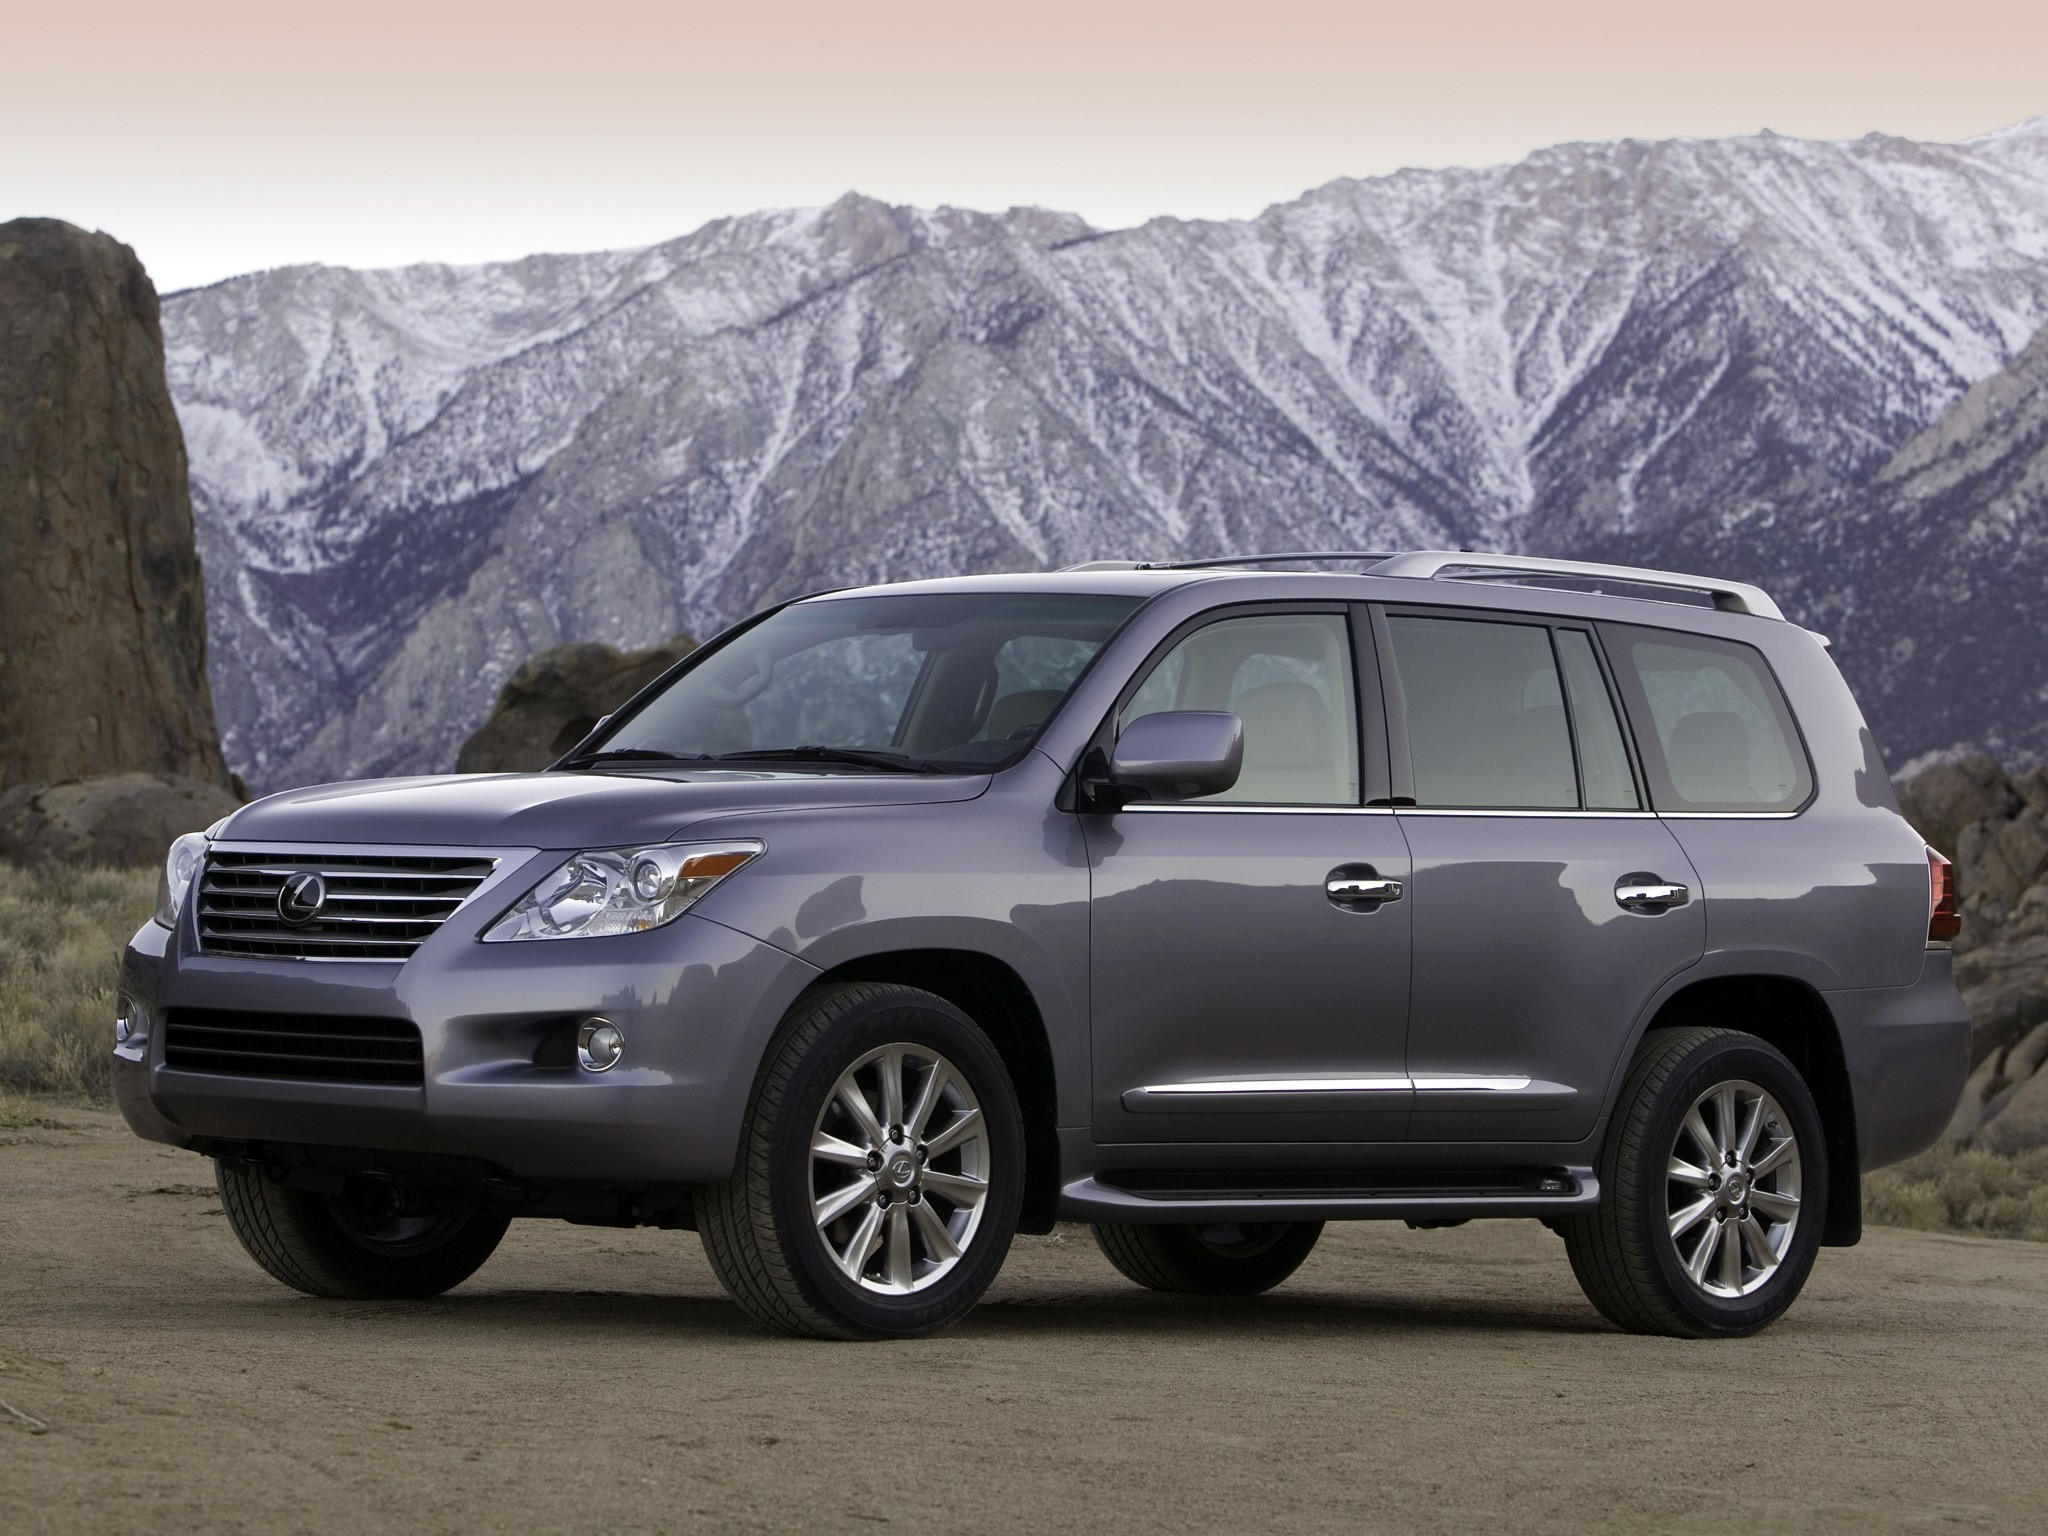 lexus lx specs 2008 2009 2010 2011 2012 autoevolution. Black Bedroom Furniture Sets. Home Design Ideas